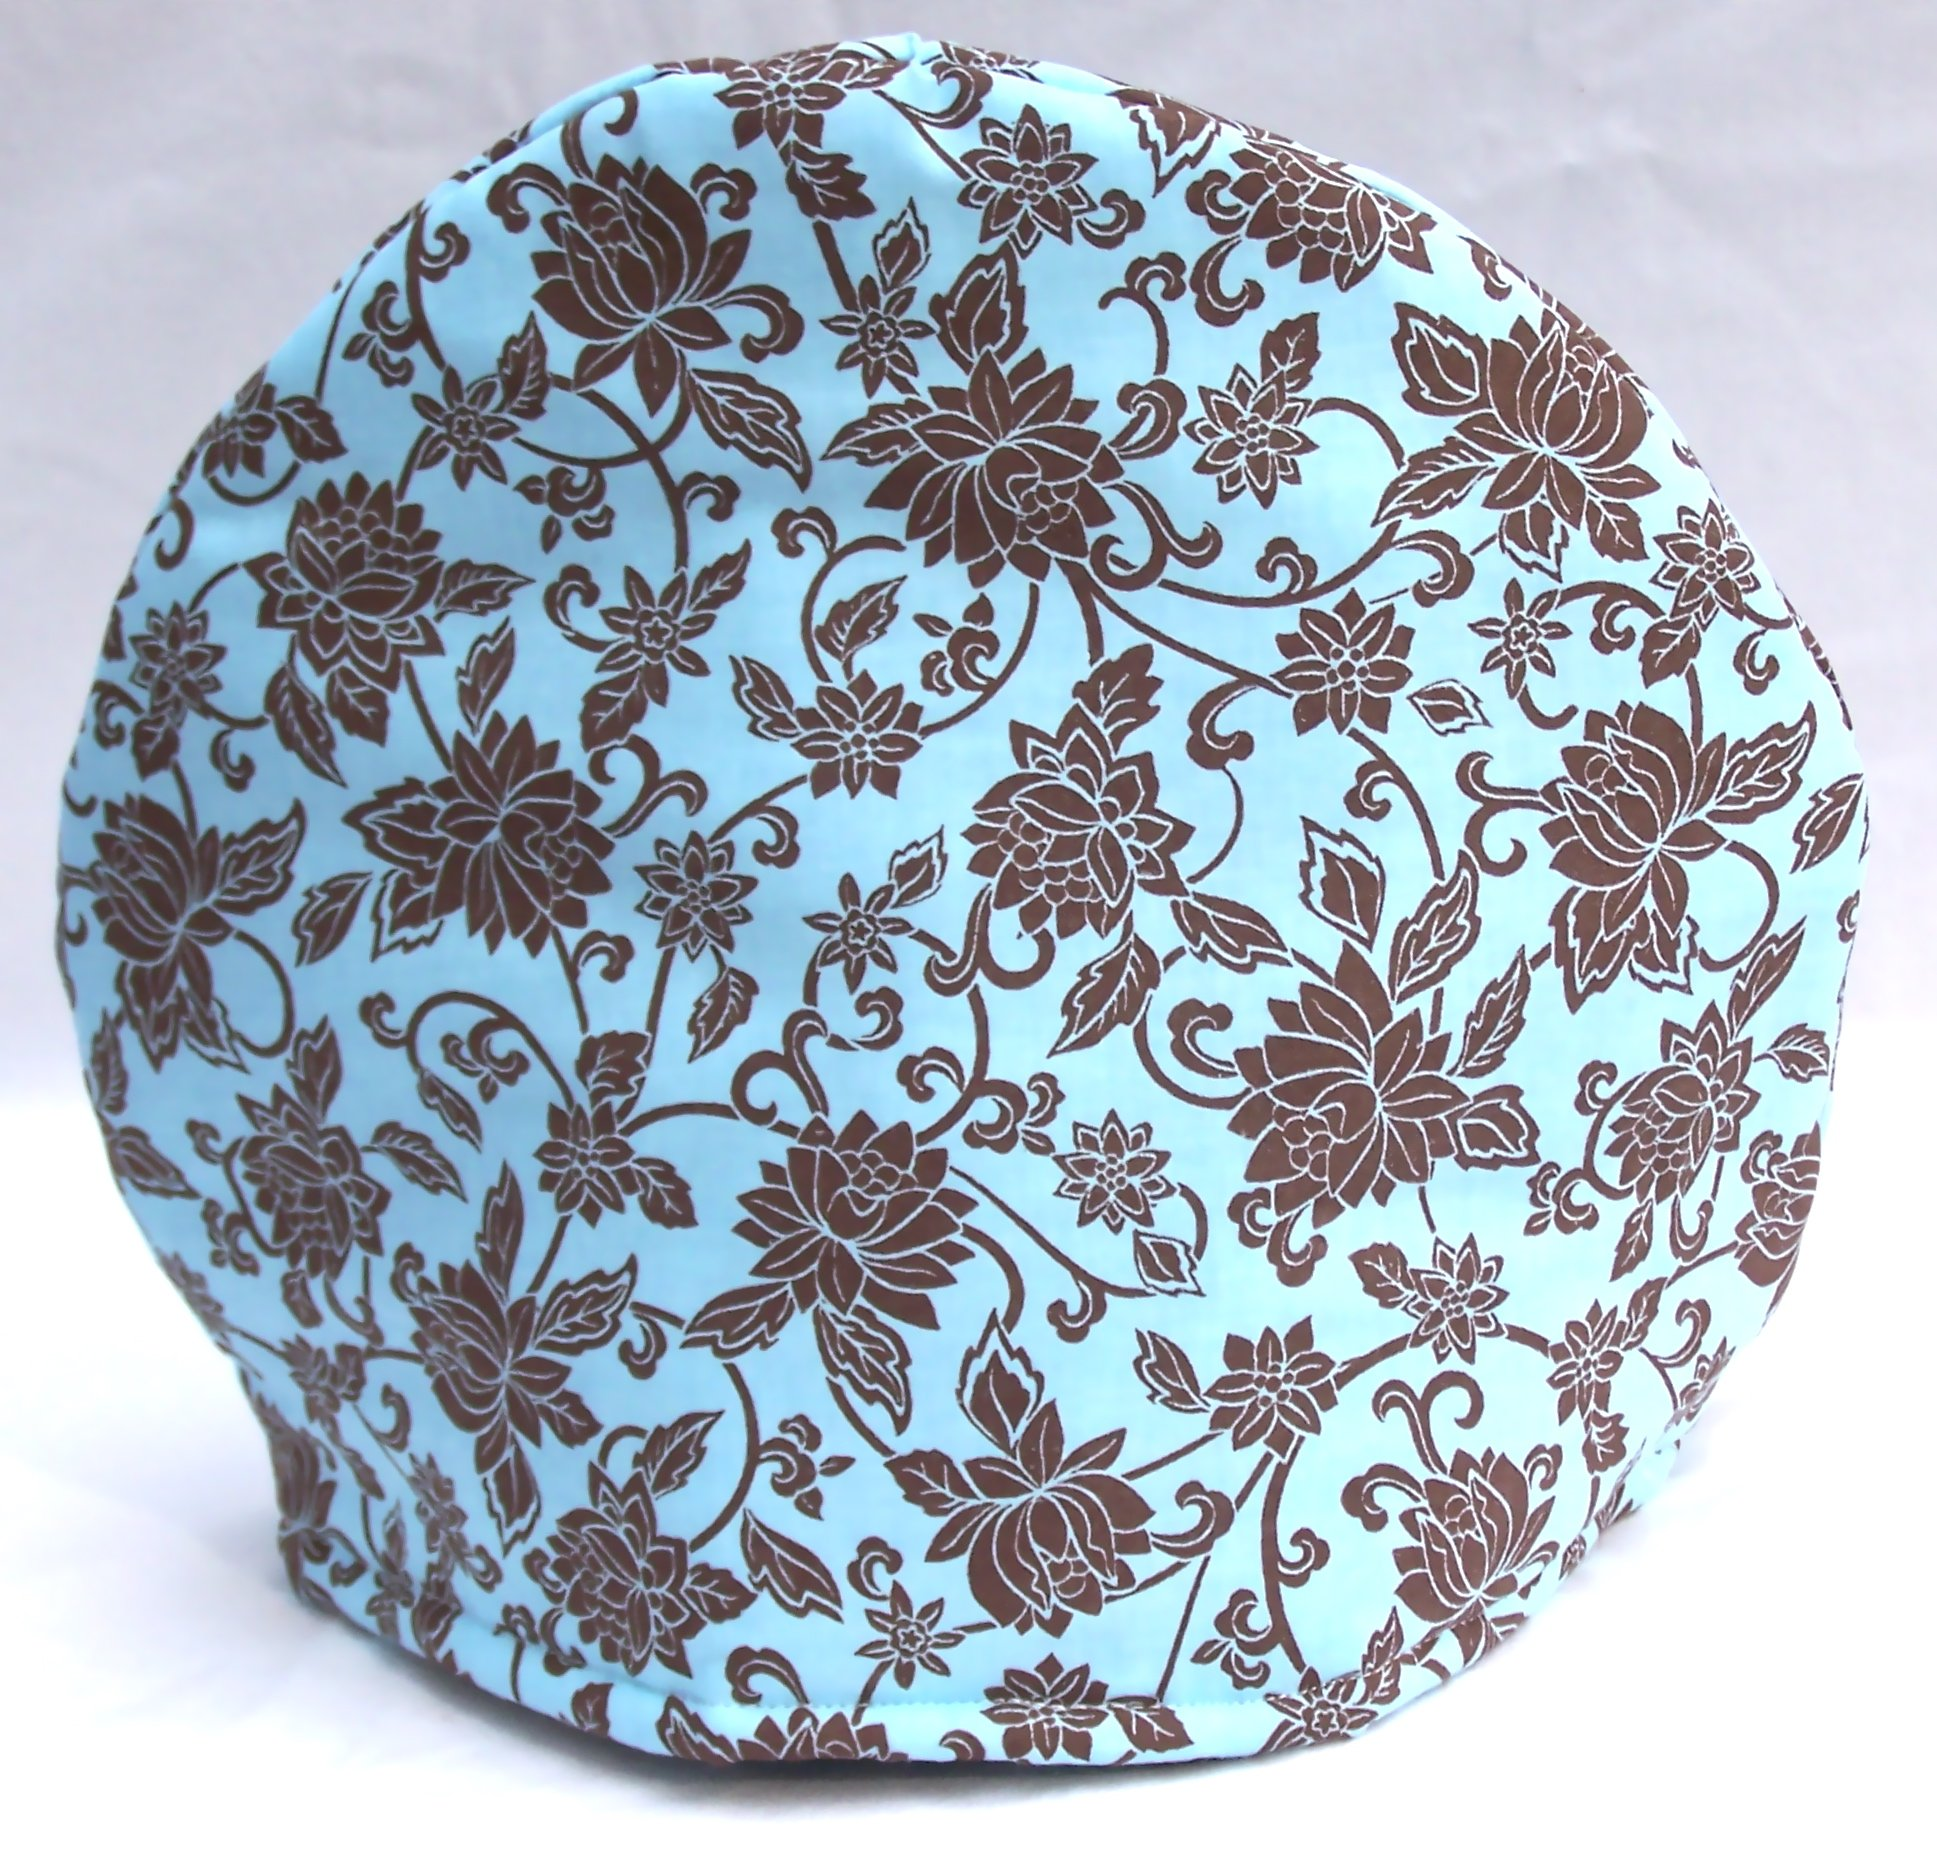 Handmade Brown and Tiffany Teal Toile Print Fabric Tea Cozy Lined and Padded Cosy by dsb (Image #1)